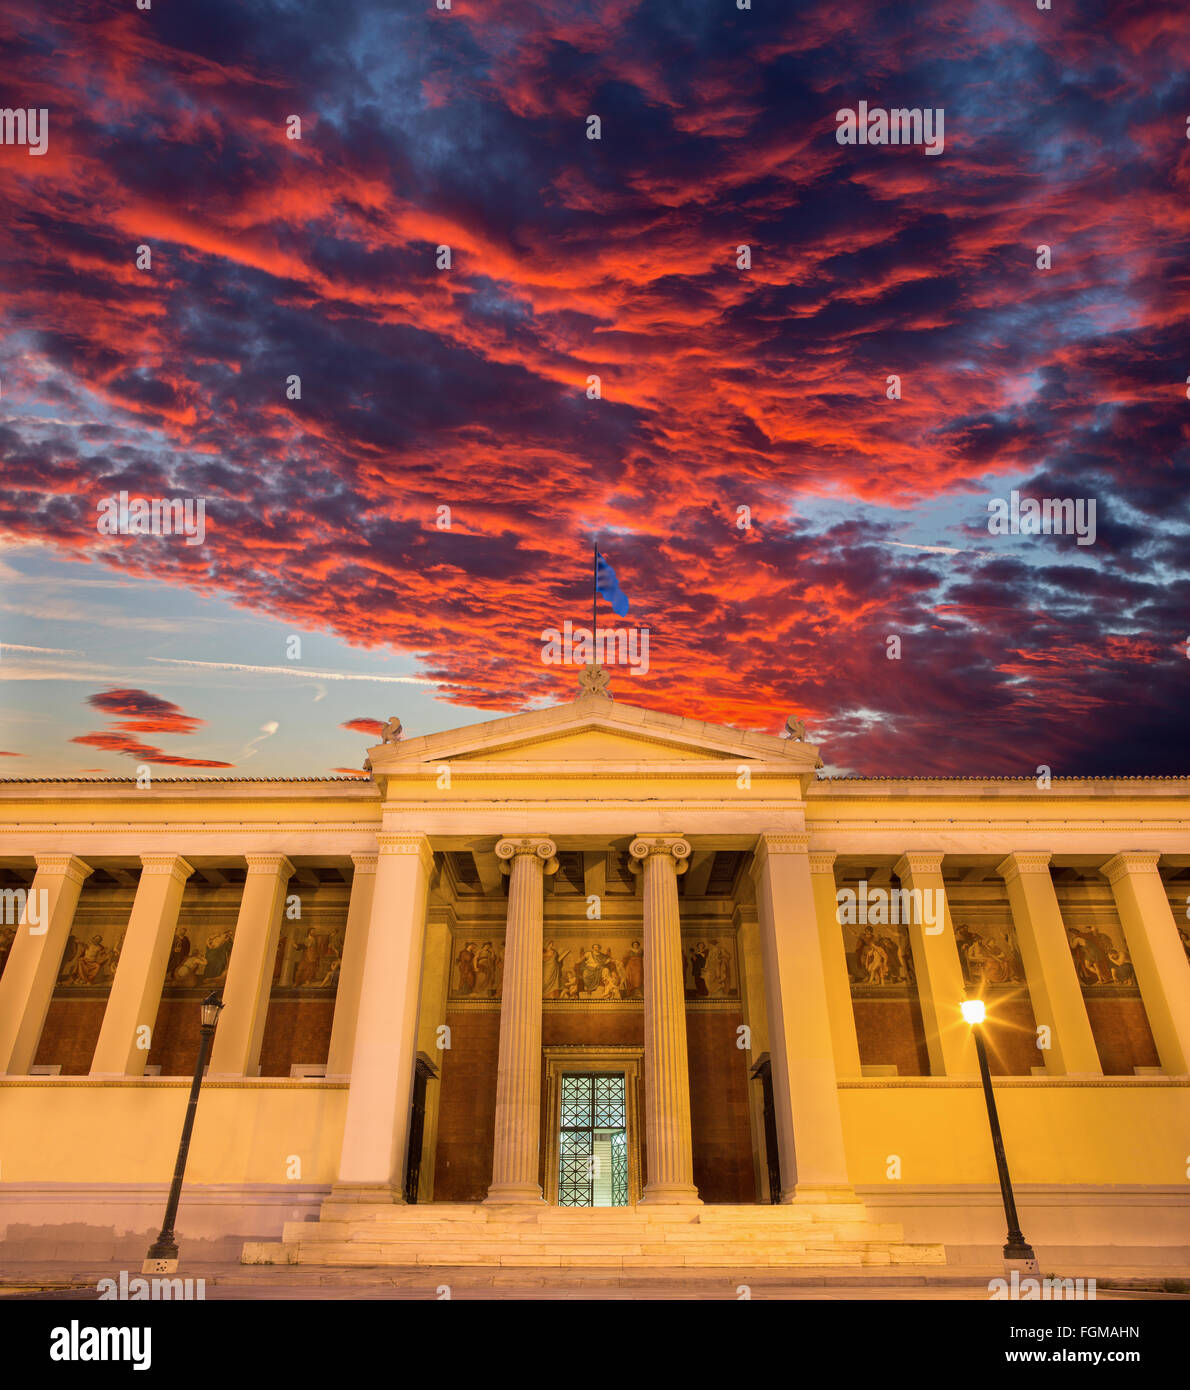 Athens - The building of National and Kapodistrian University of Athens at dusk - Stock Image